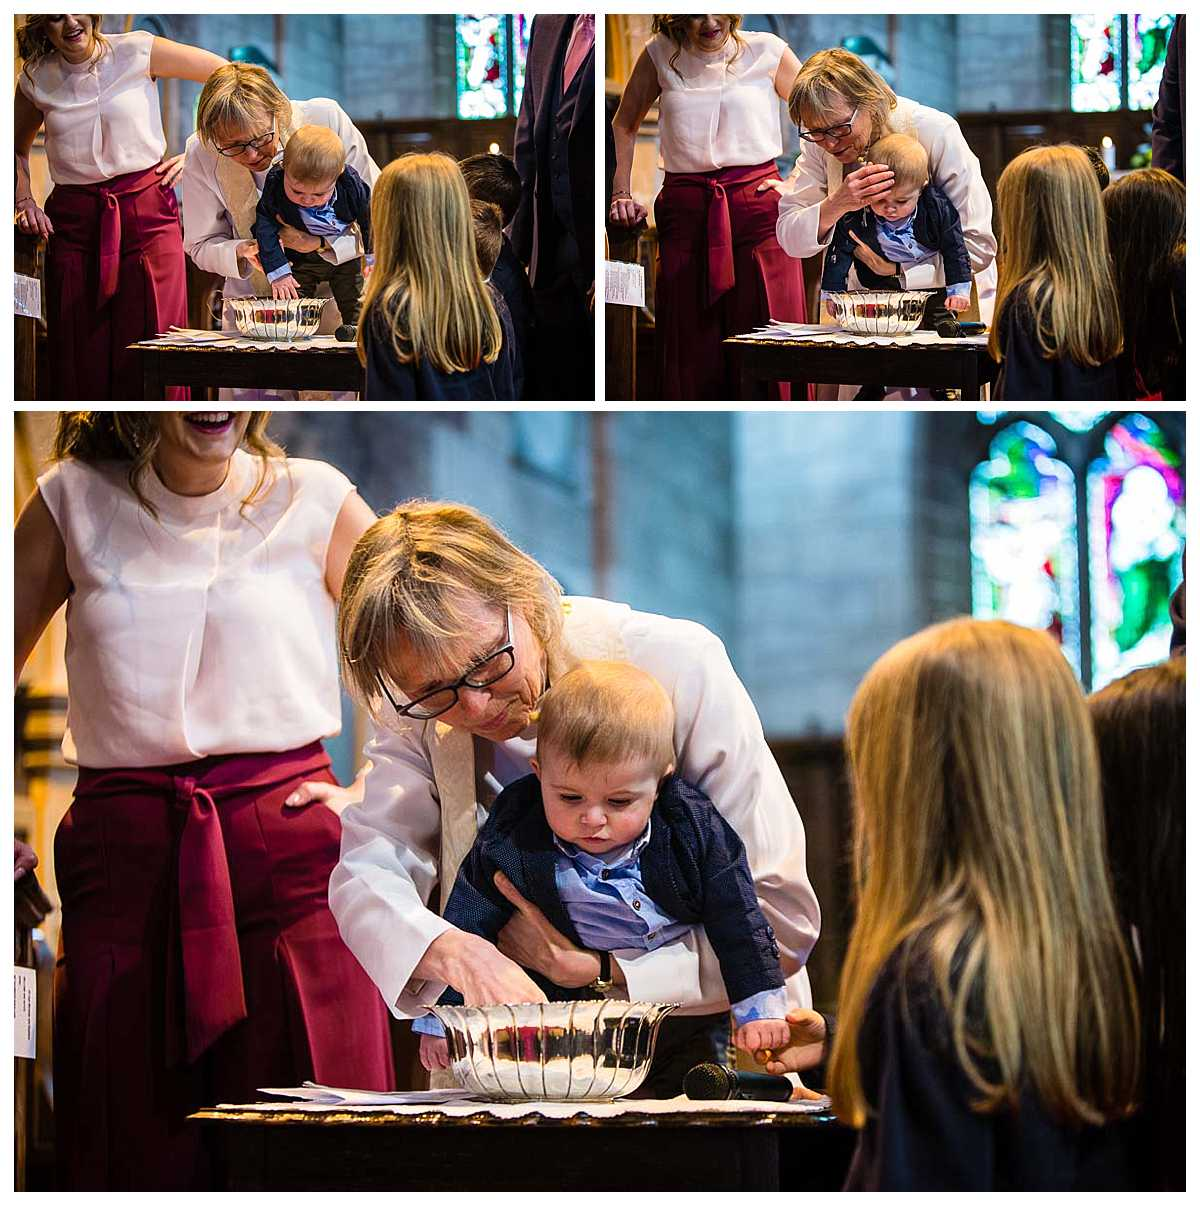 vicar of st james' church, audlem christening baby boy at the alter over a silver bowl of warm water